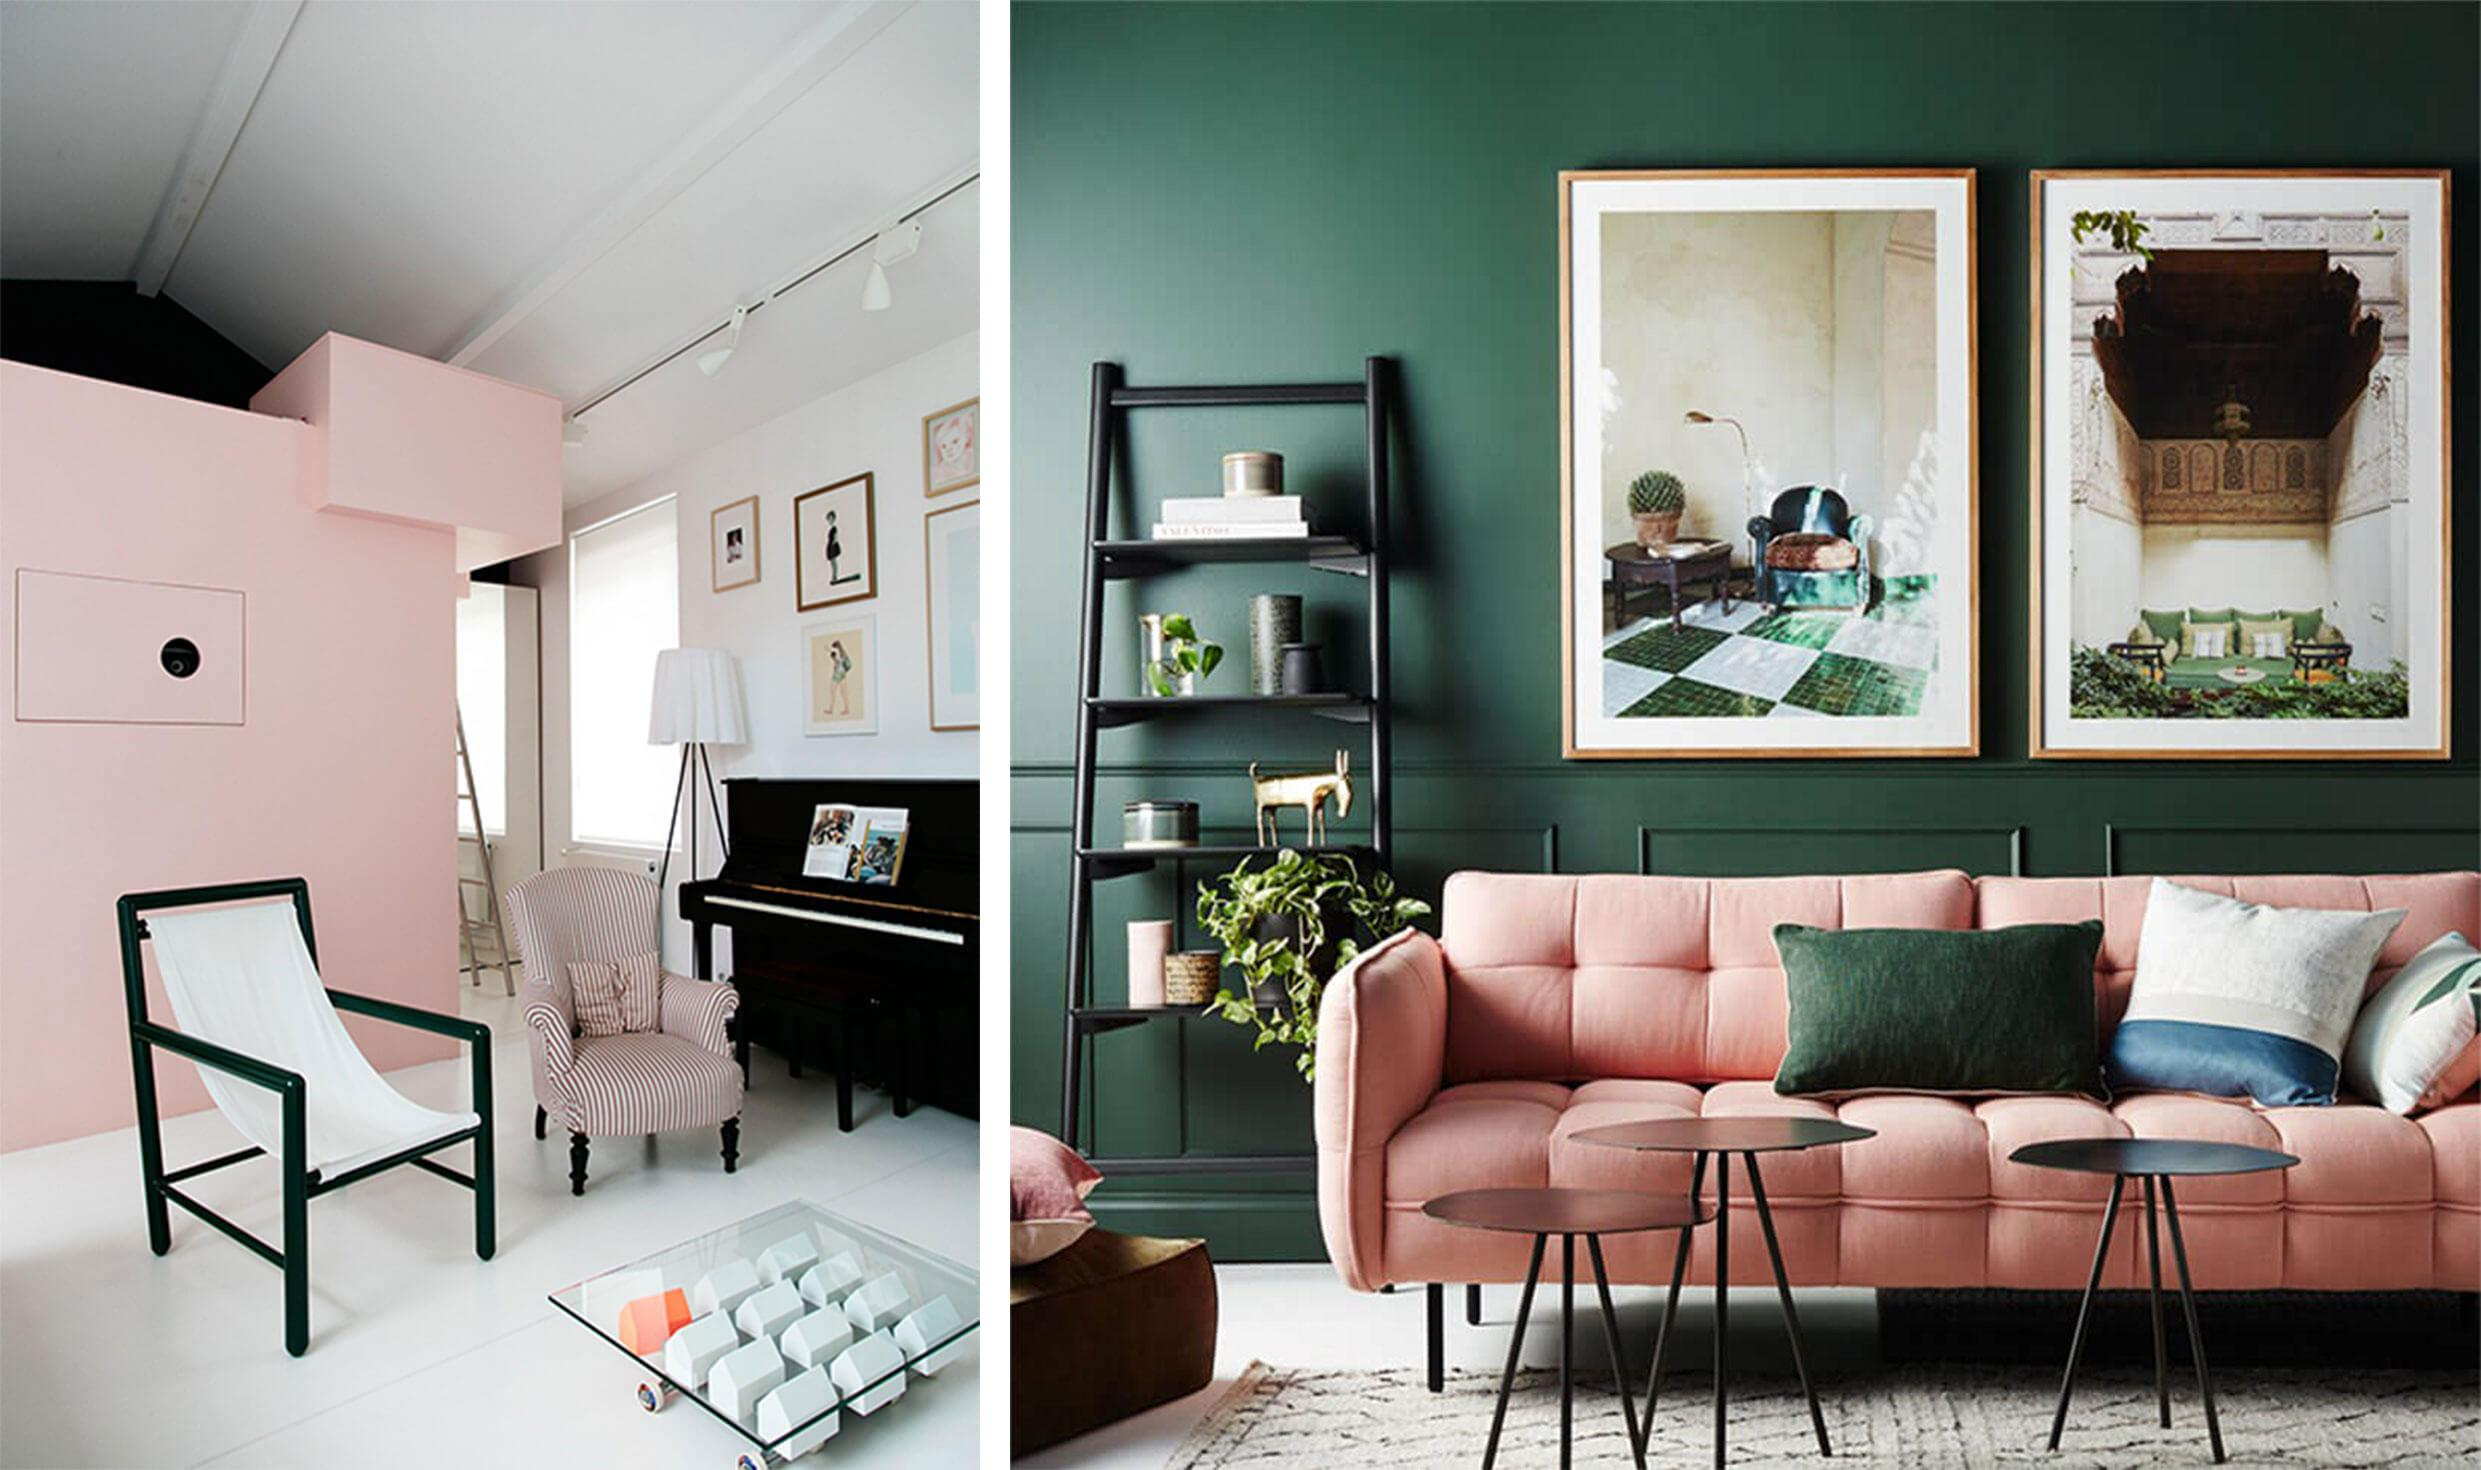 pink and white minimalist living room, pink sofa in a green living room